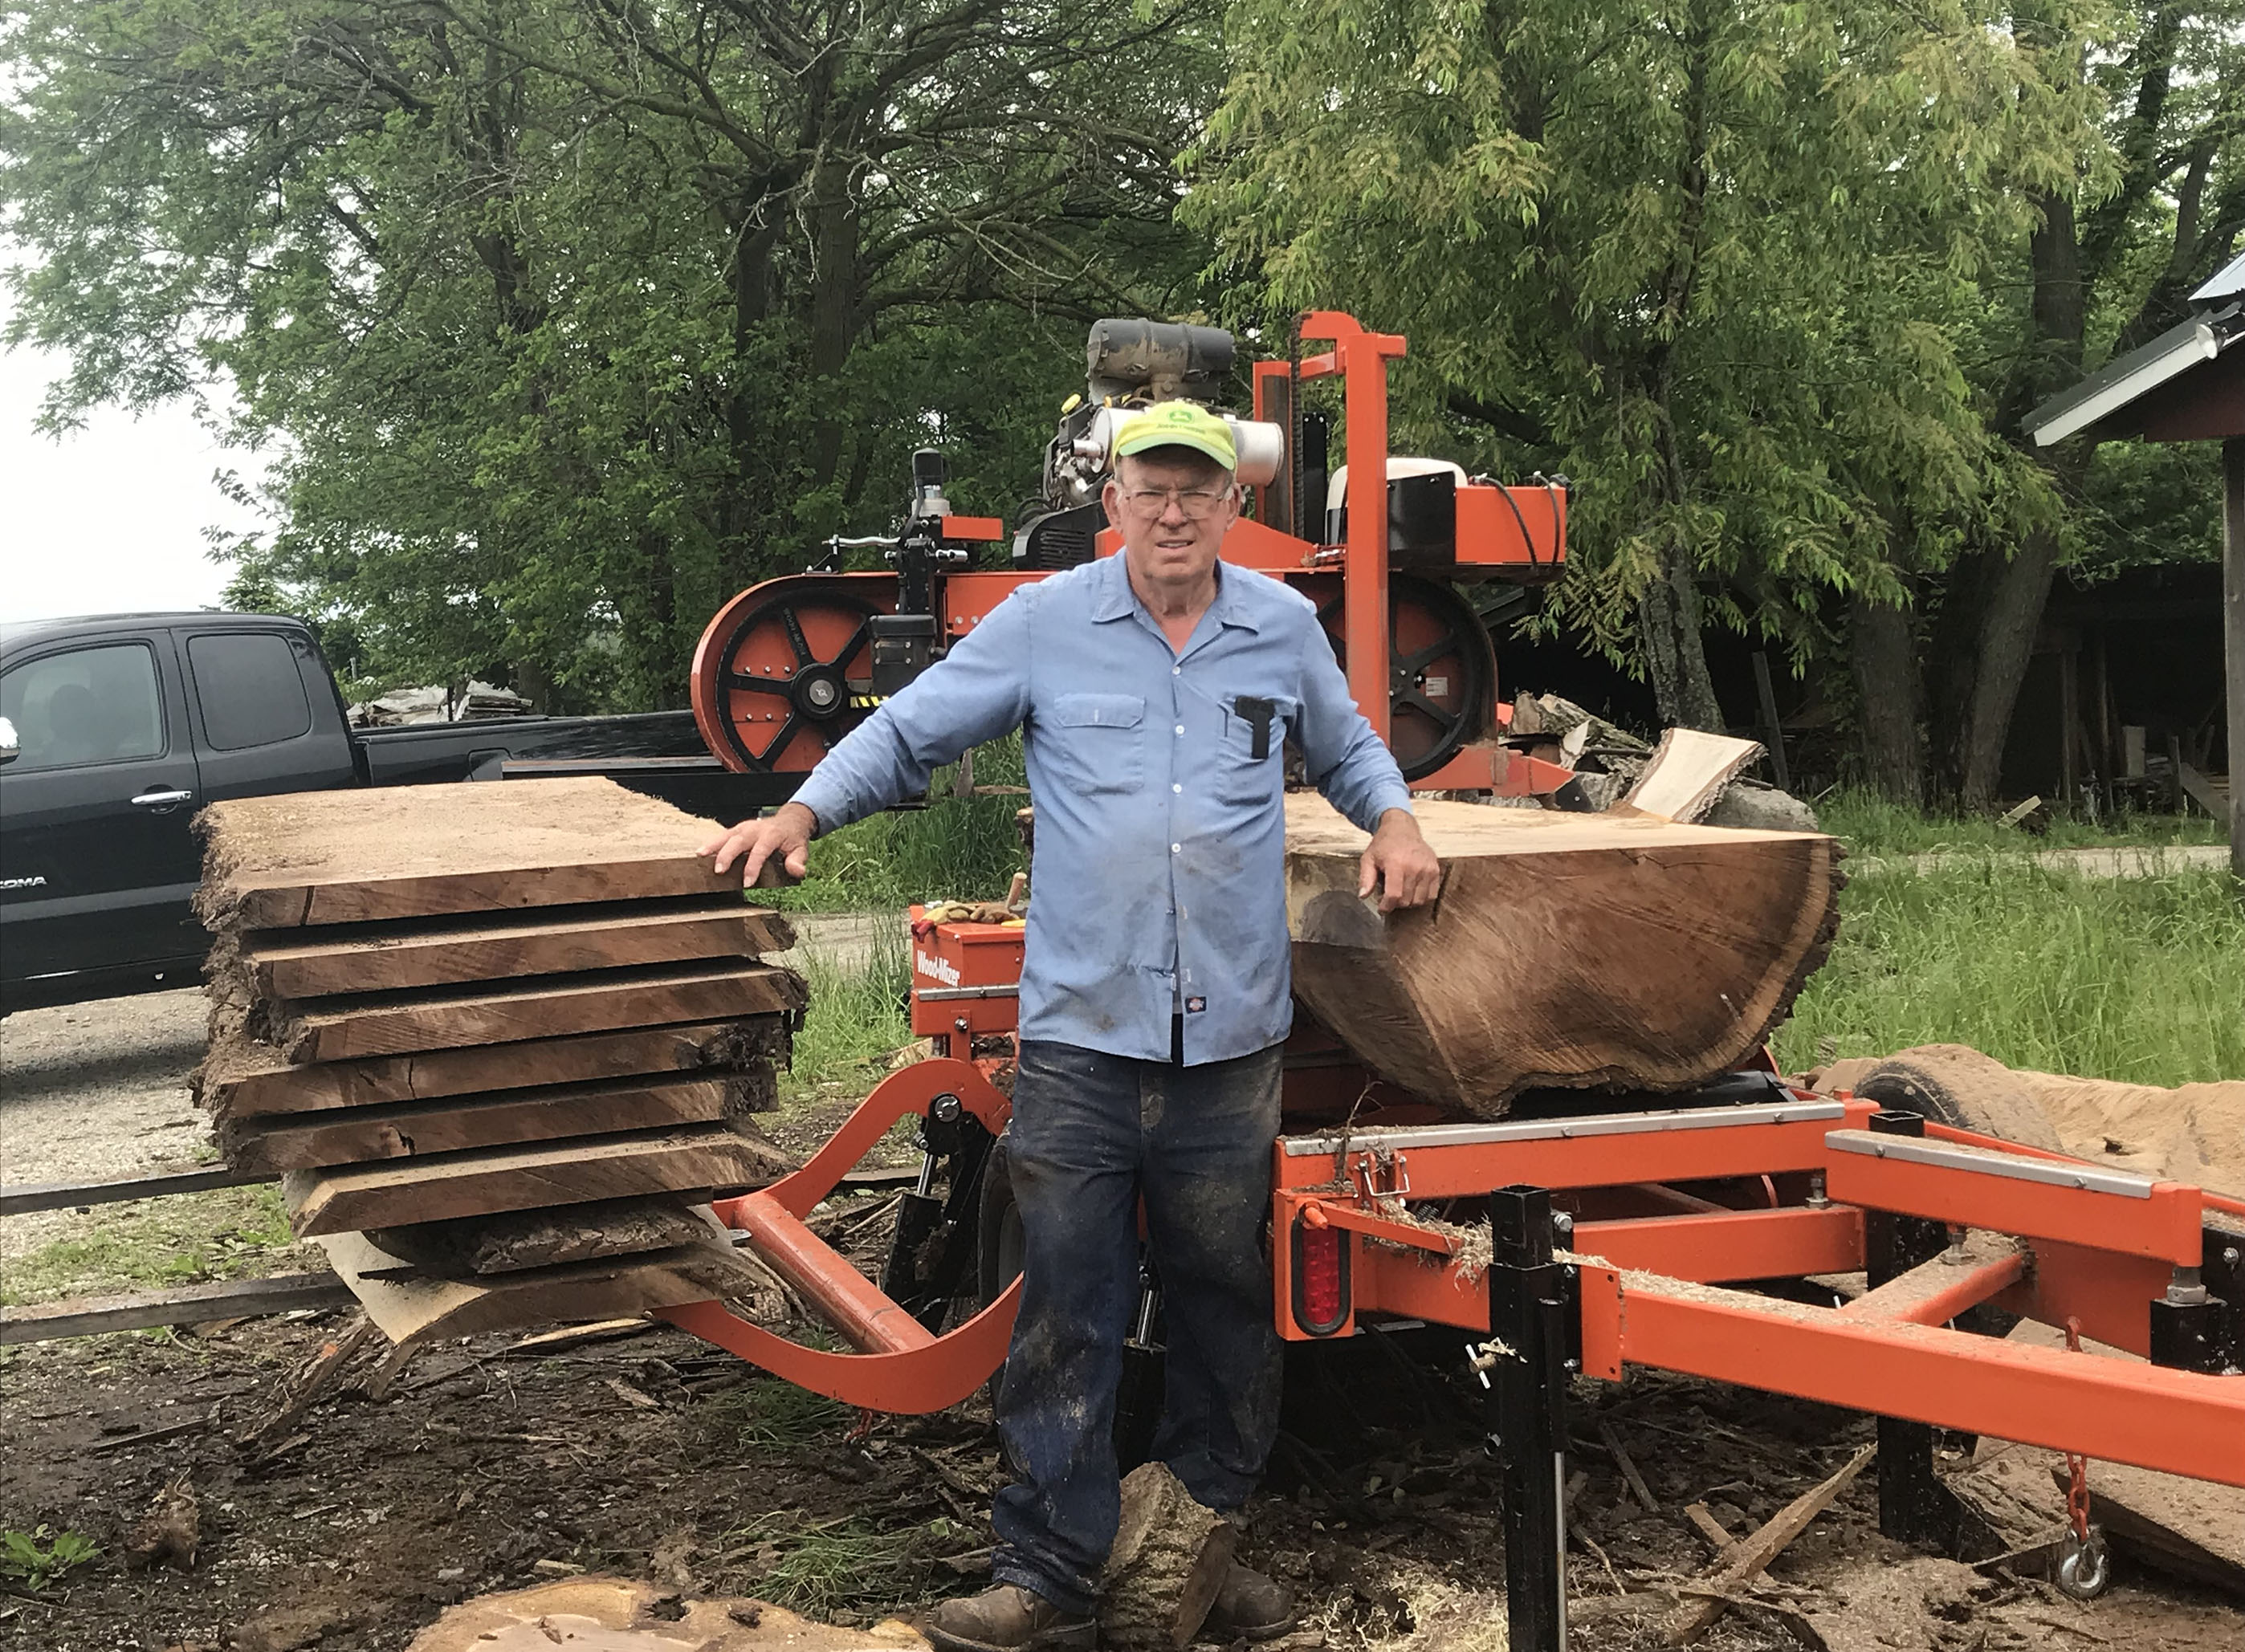 Indiana Lumber for Sale: Kiln Dried, Urban and Local Lumber, Live